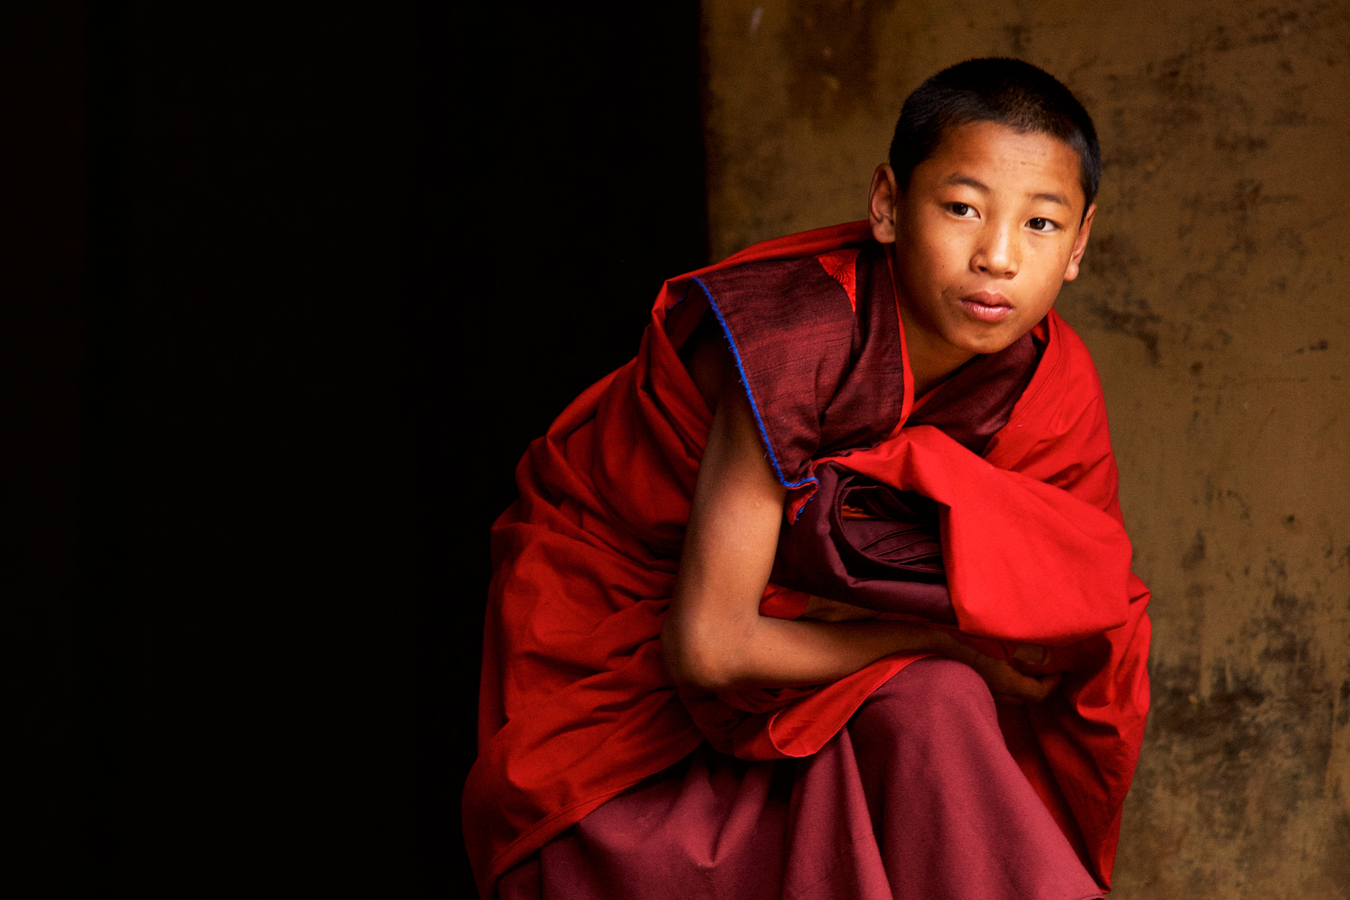 Pictures of Monks